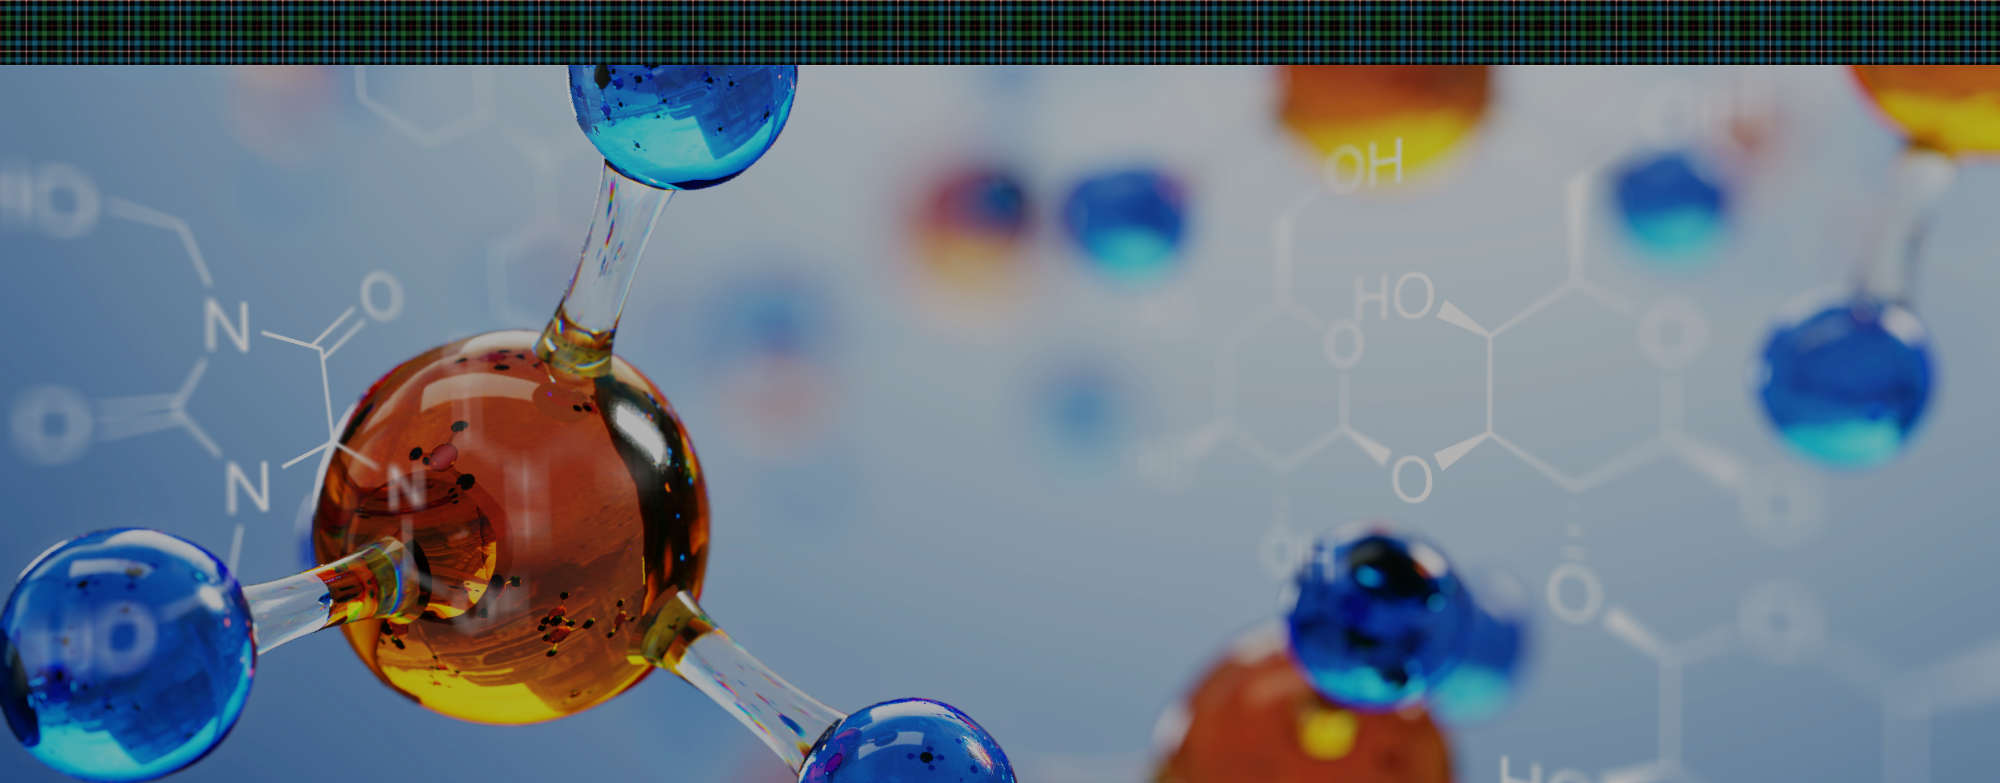 Charles Tennant is a leading independent distributor of chemicals based in the UK